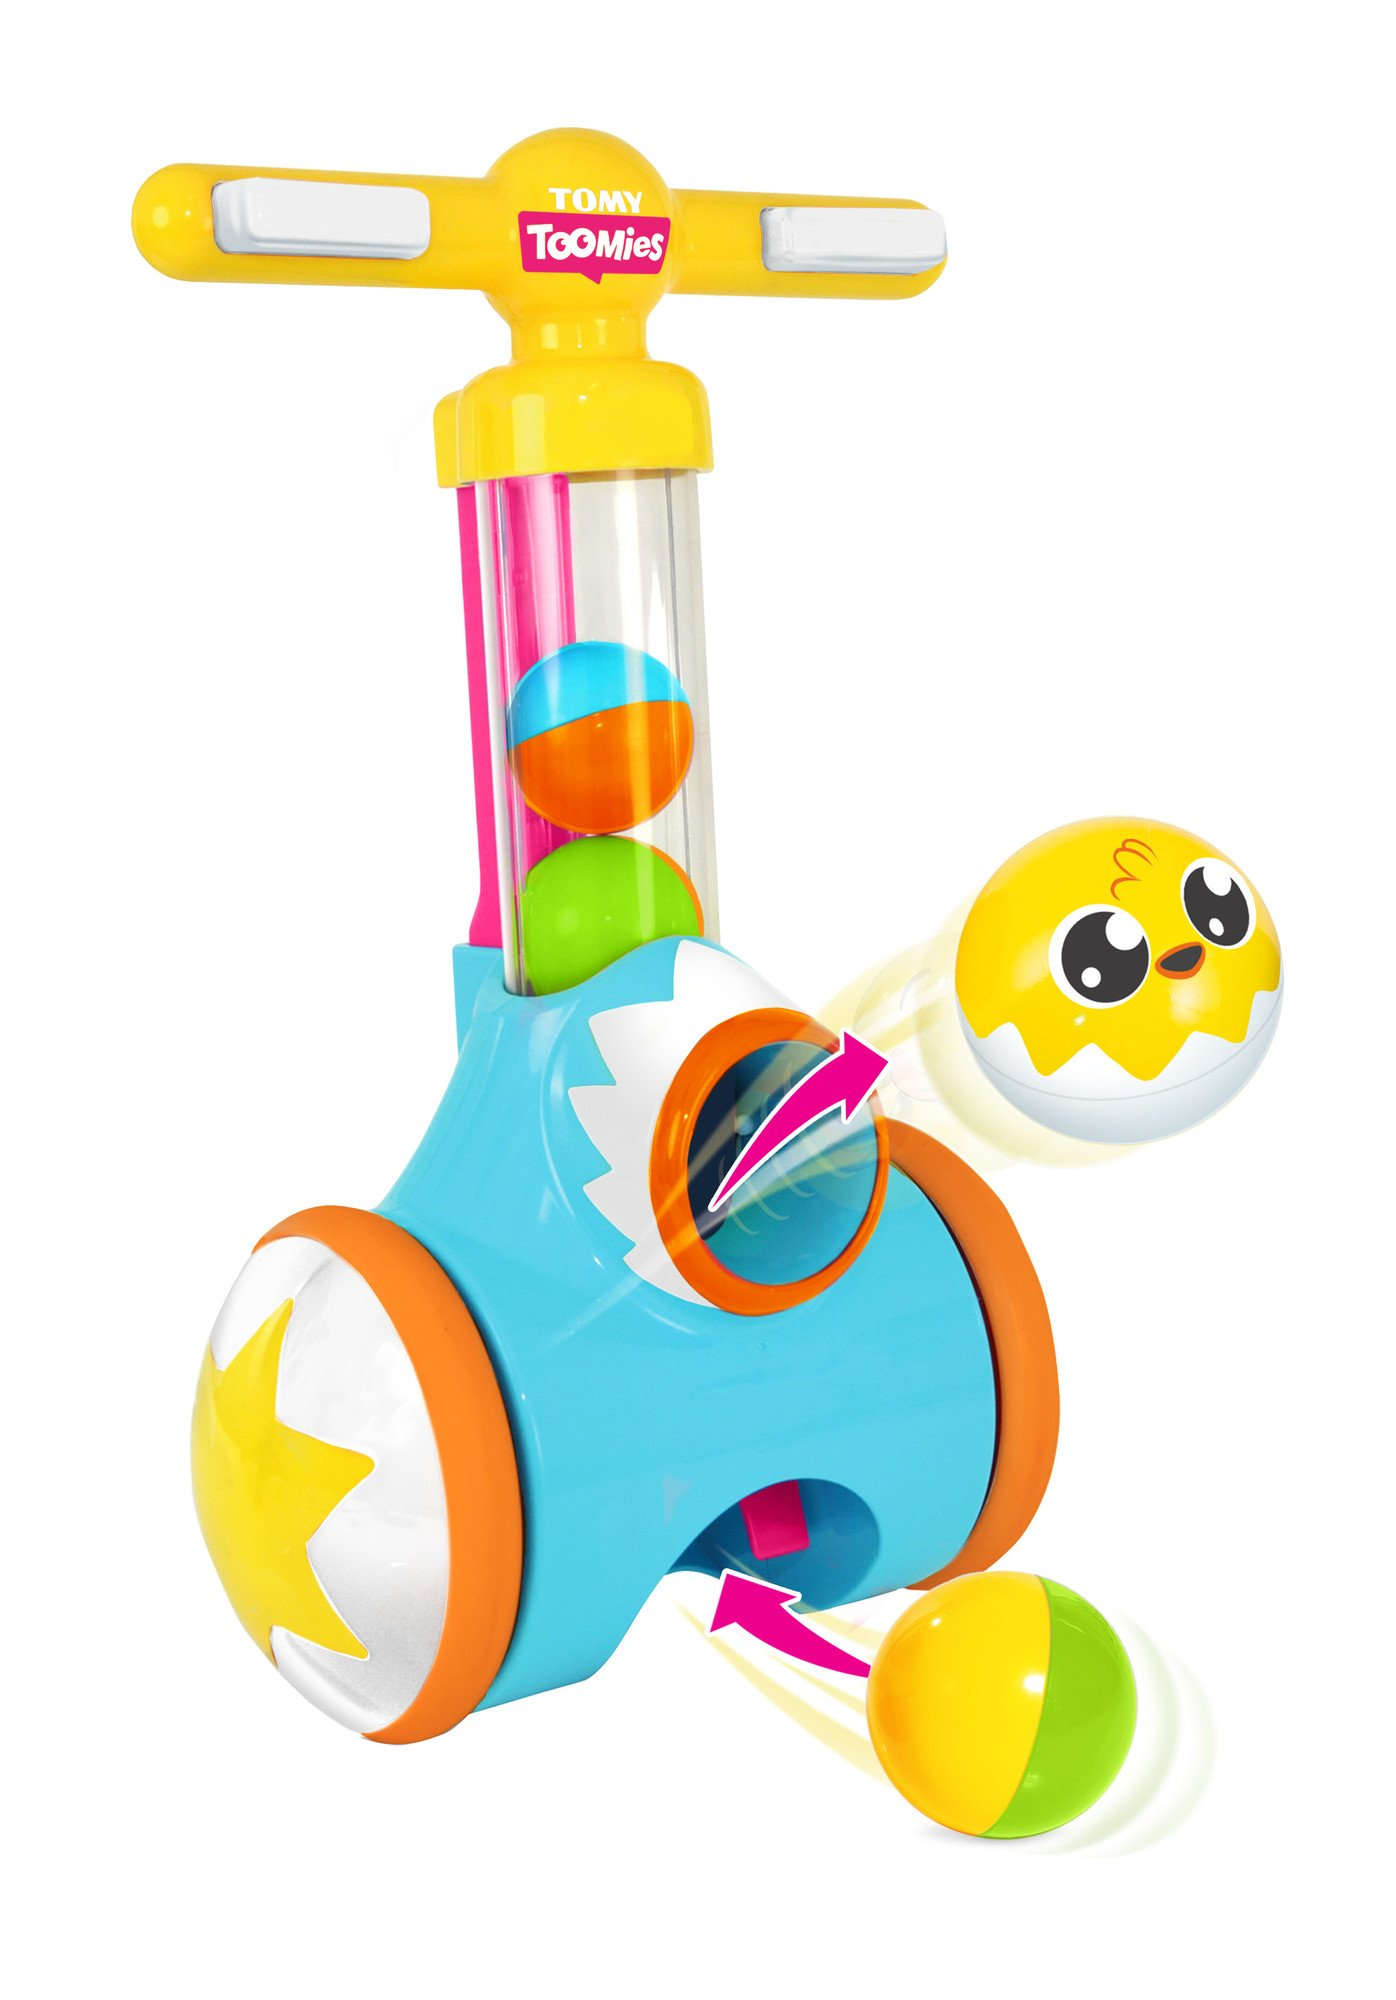 TOMY Toomies Pic and Pop - Walker Toy with ball launcher and collector - Suitable From 18 Months